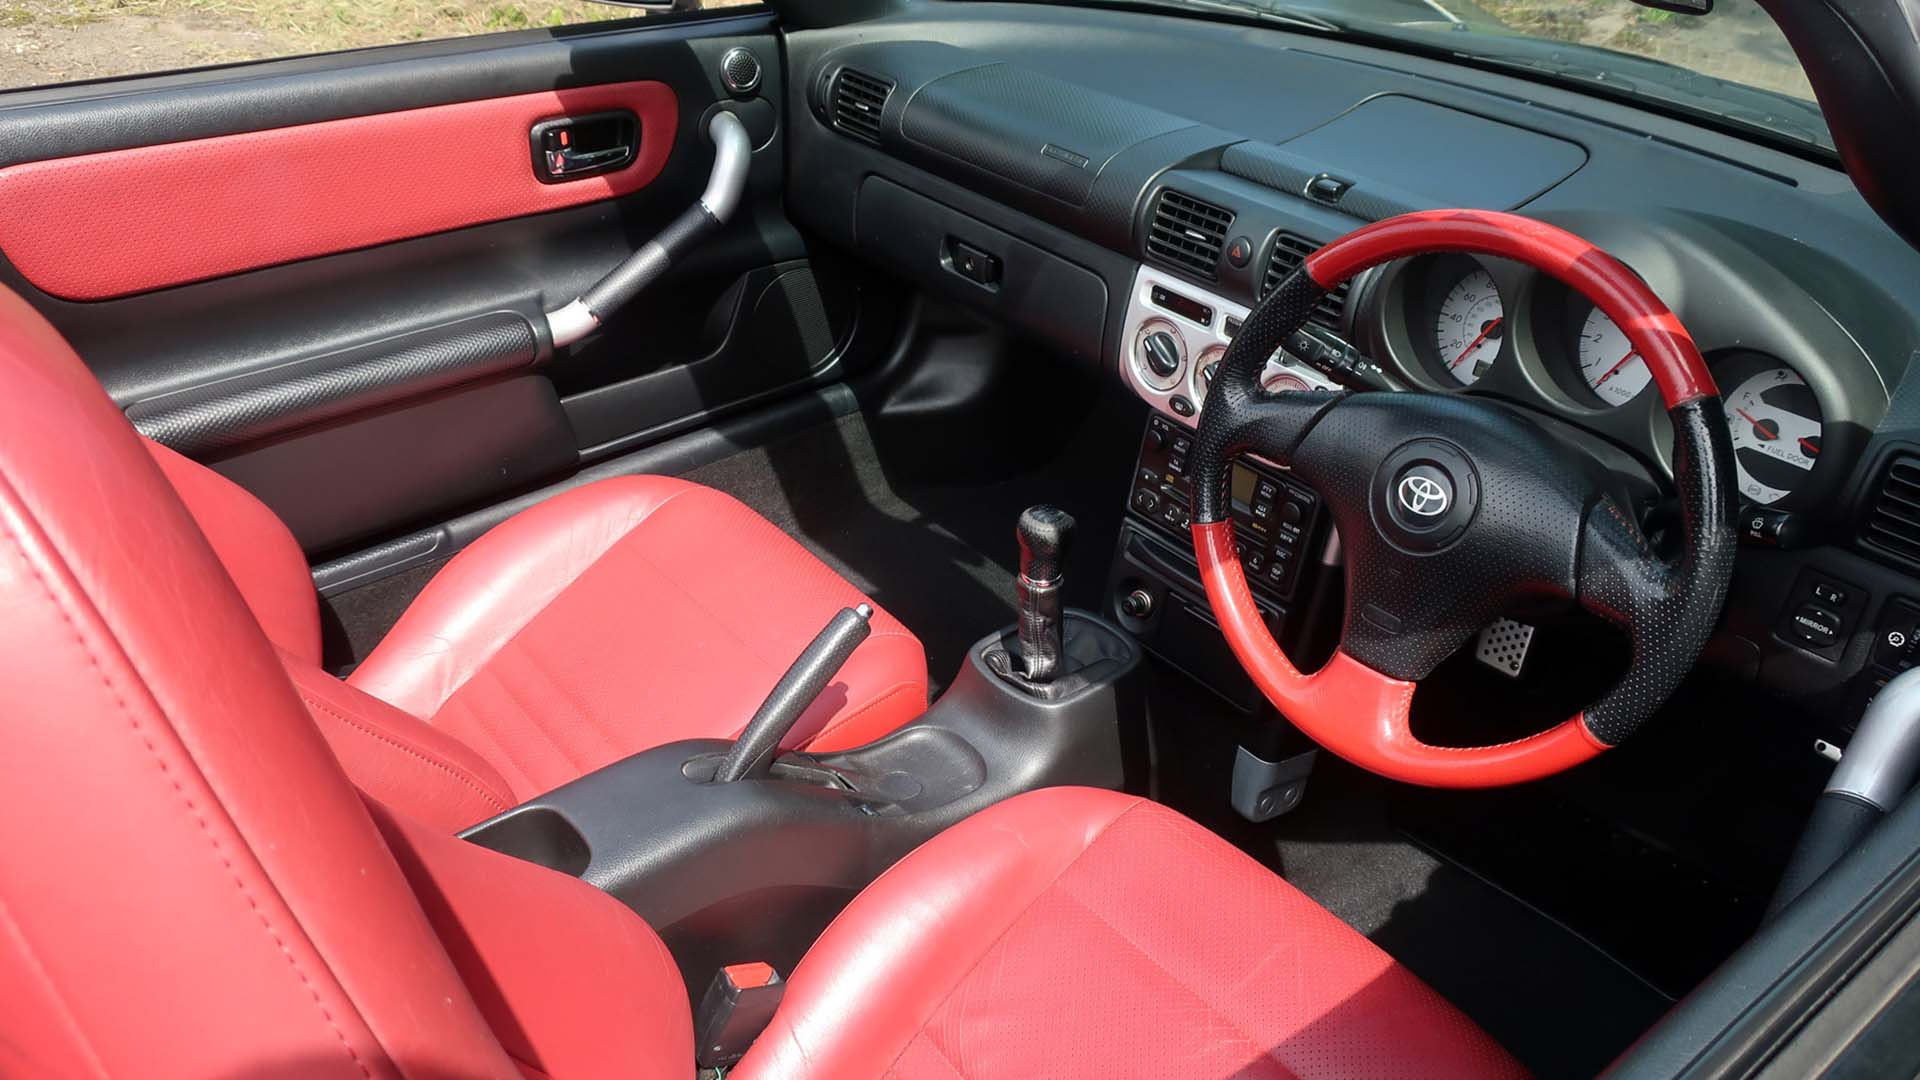 Toyota MR2 Red Collection interior